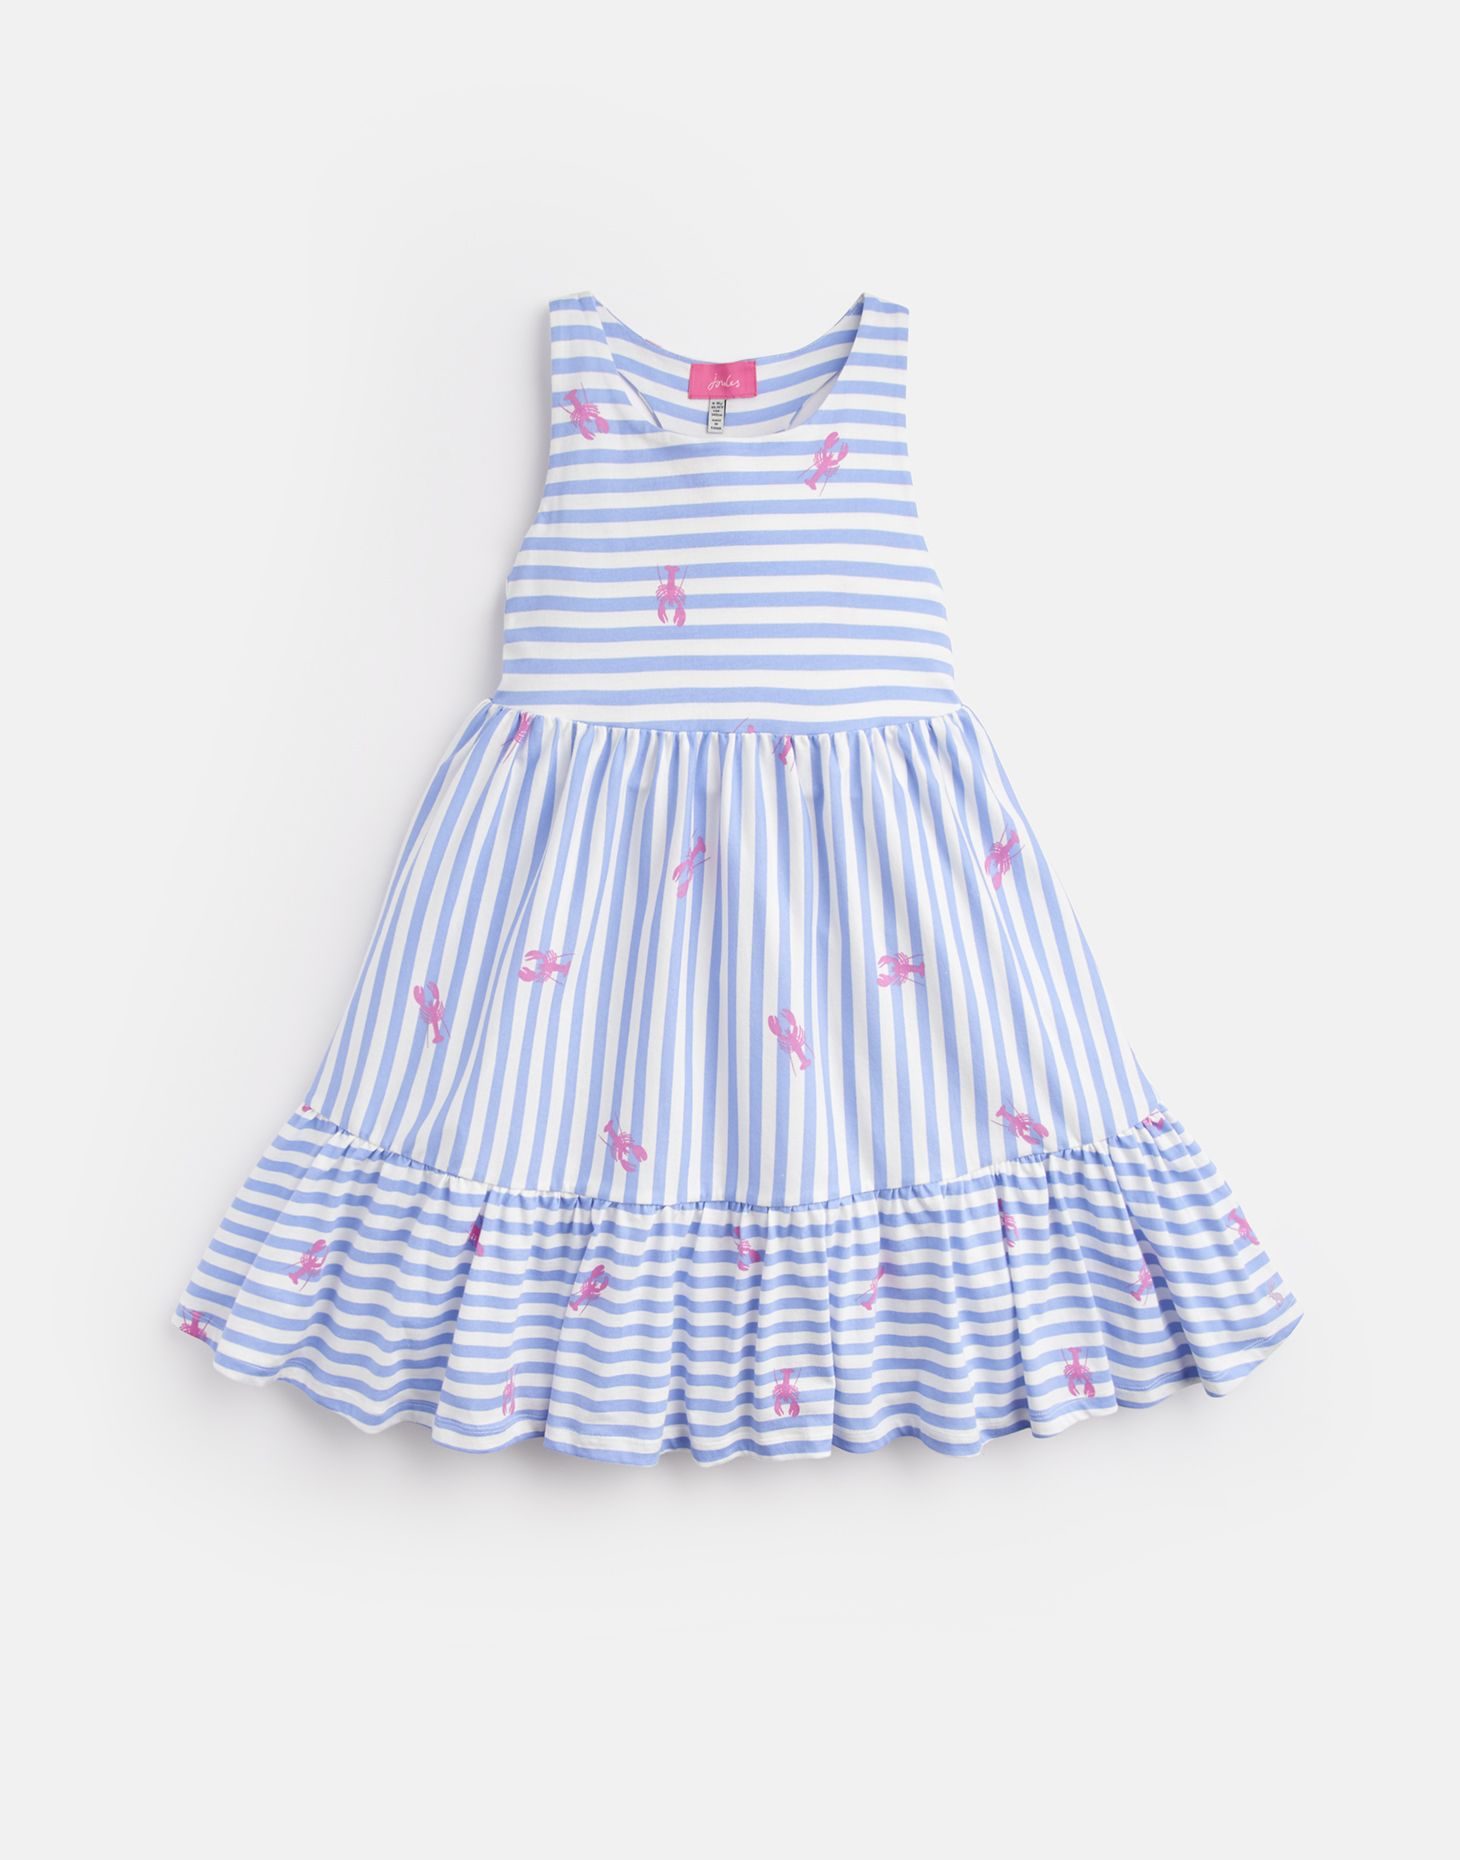 7fa4147c57cd Juno BLUE LOBSTER STRIPE Peplum Midi Dress 3-12 Yr | Joules UK